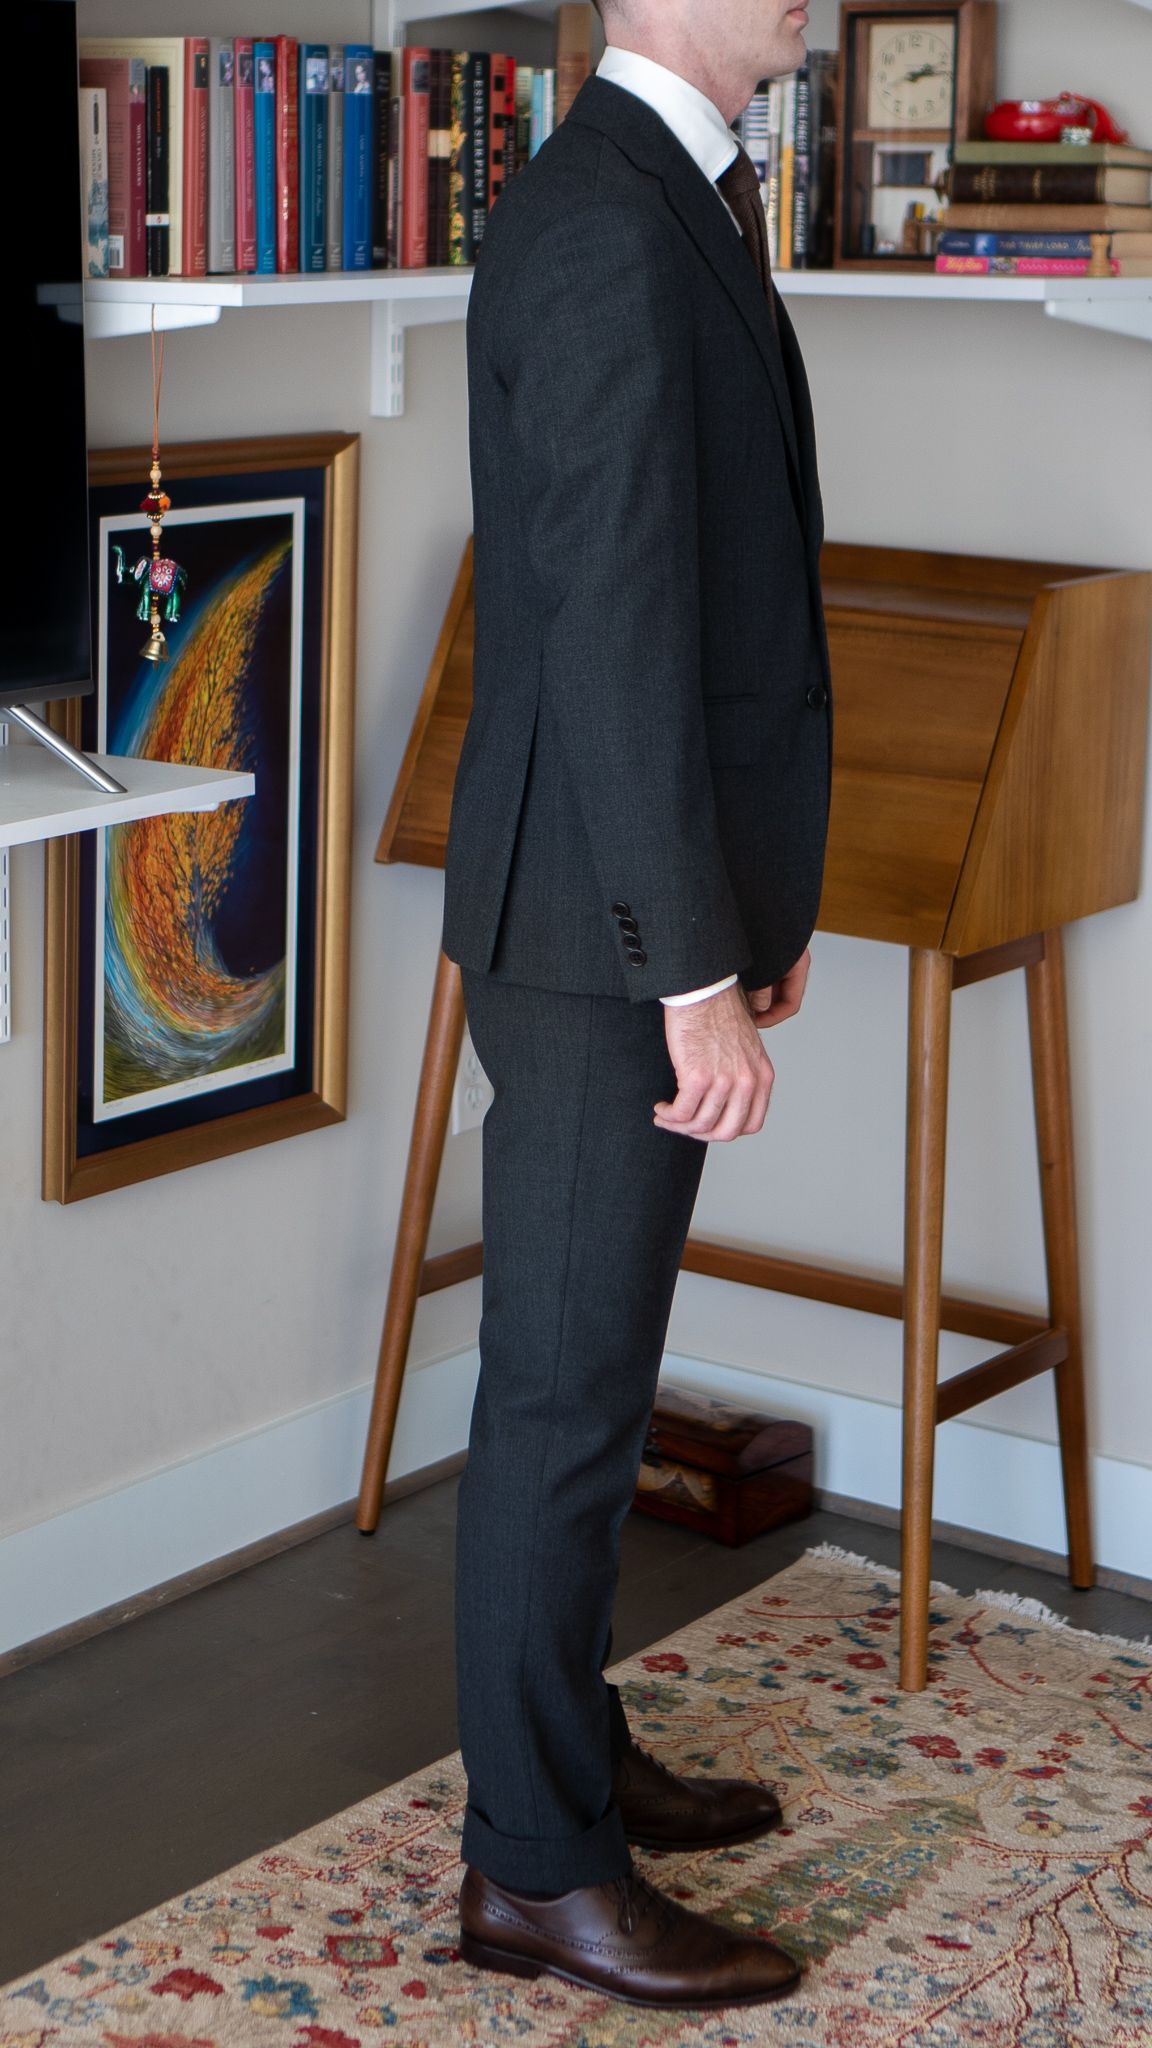 Full-length right side view of A Rake in Progress wearing the Cavour gray winter hightwist suit